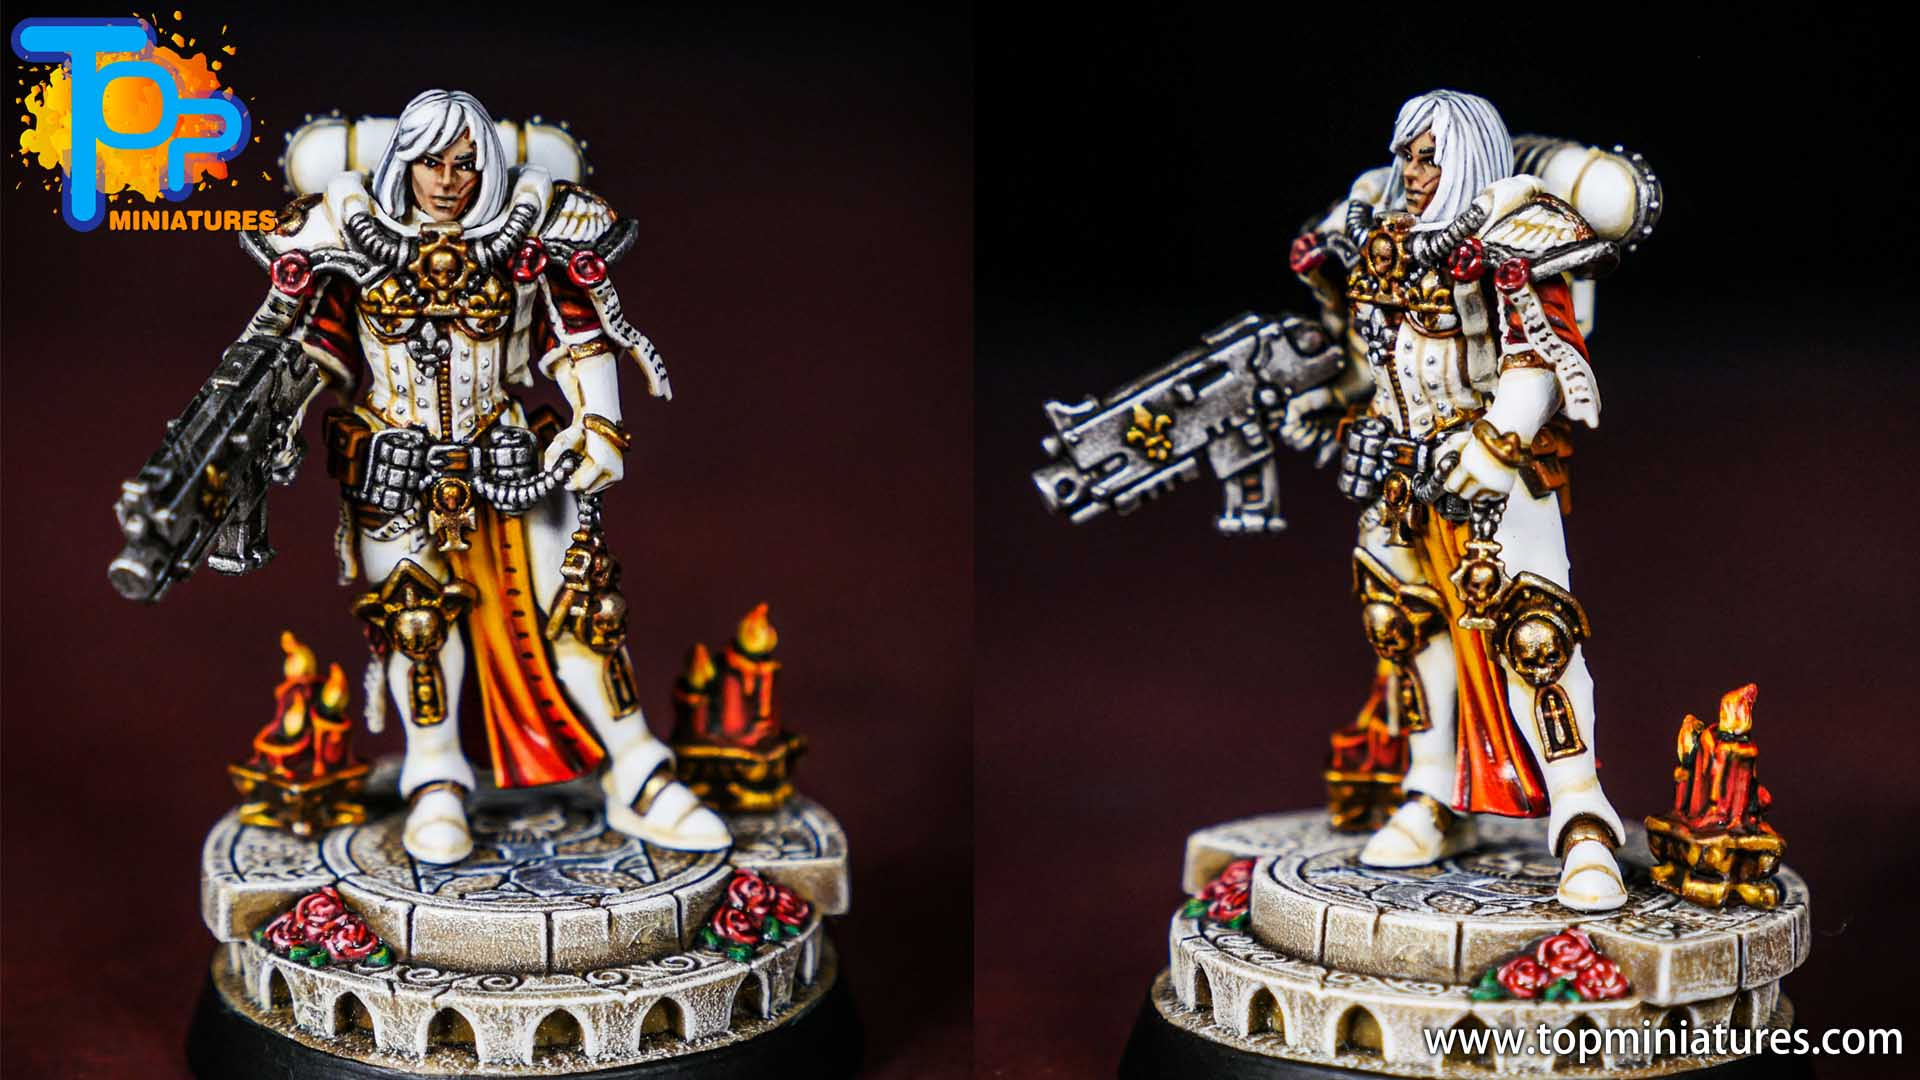 amalia novena painted by Top Miniatures